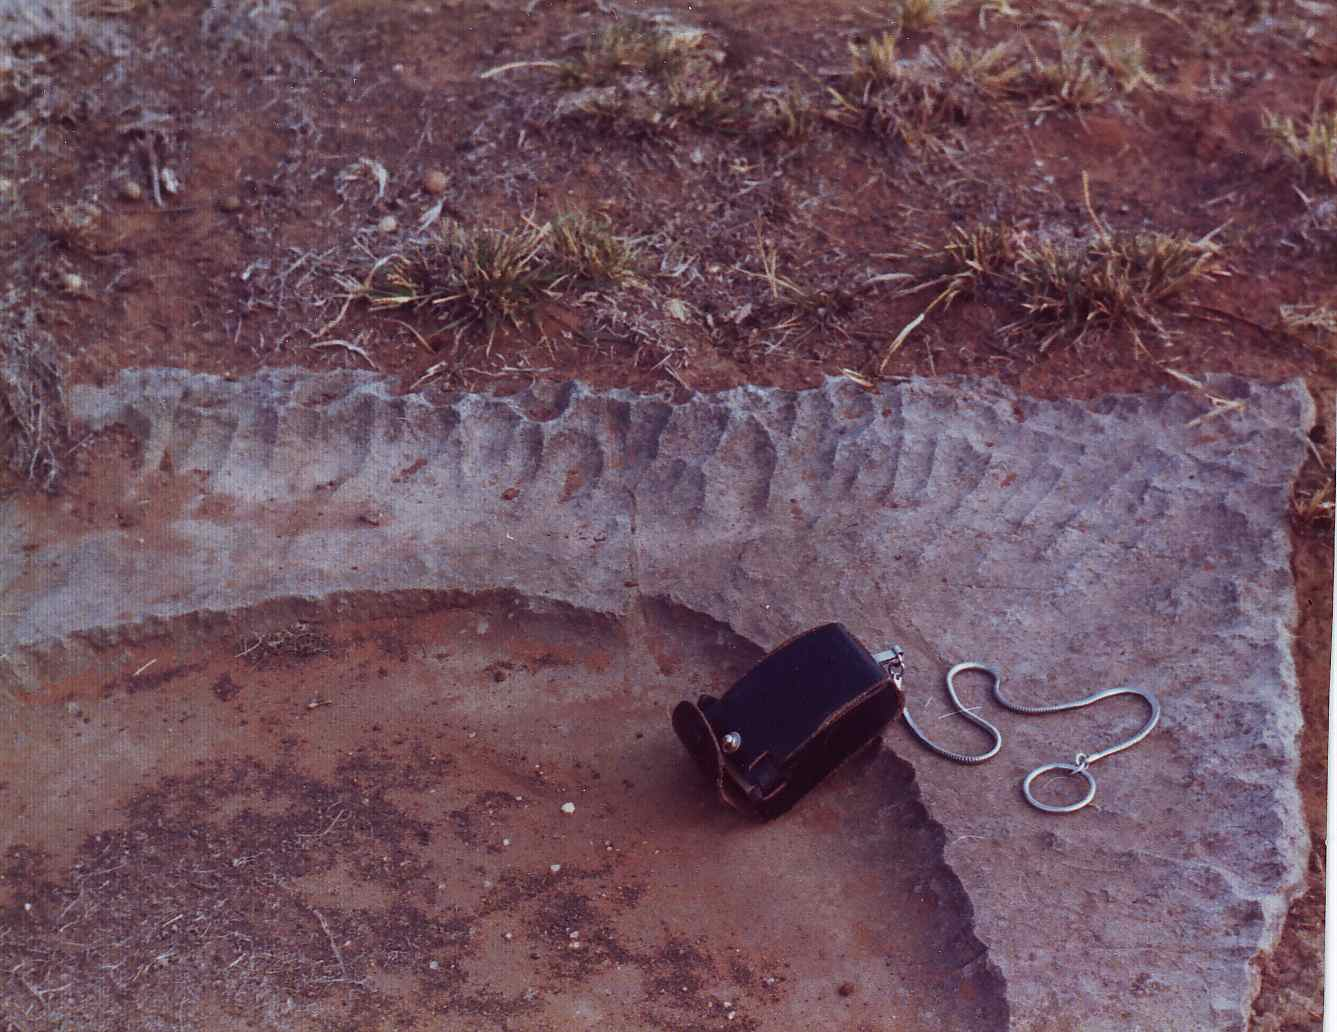 figure 111B - Close view of one of the mud crack plates (Ulco. S. Africa)